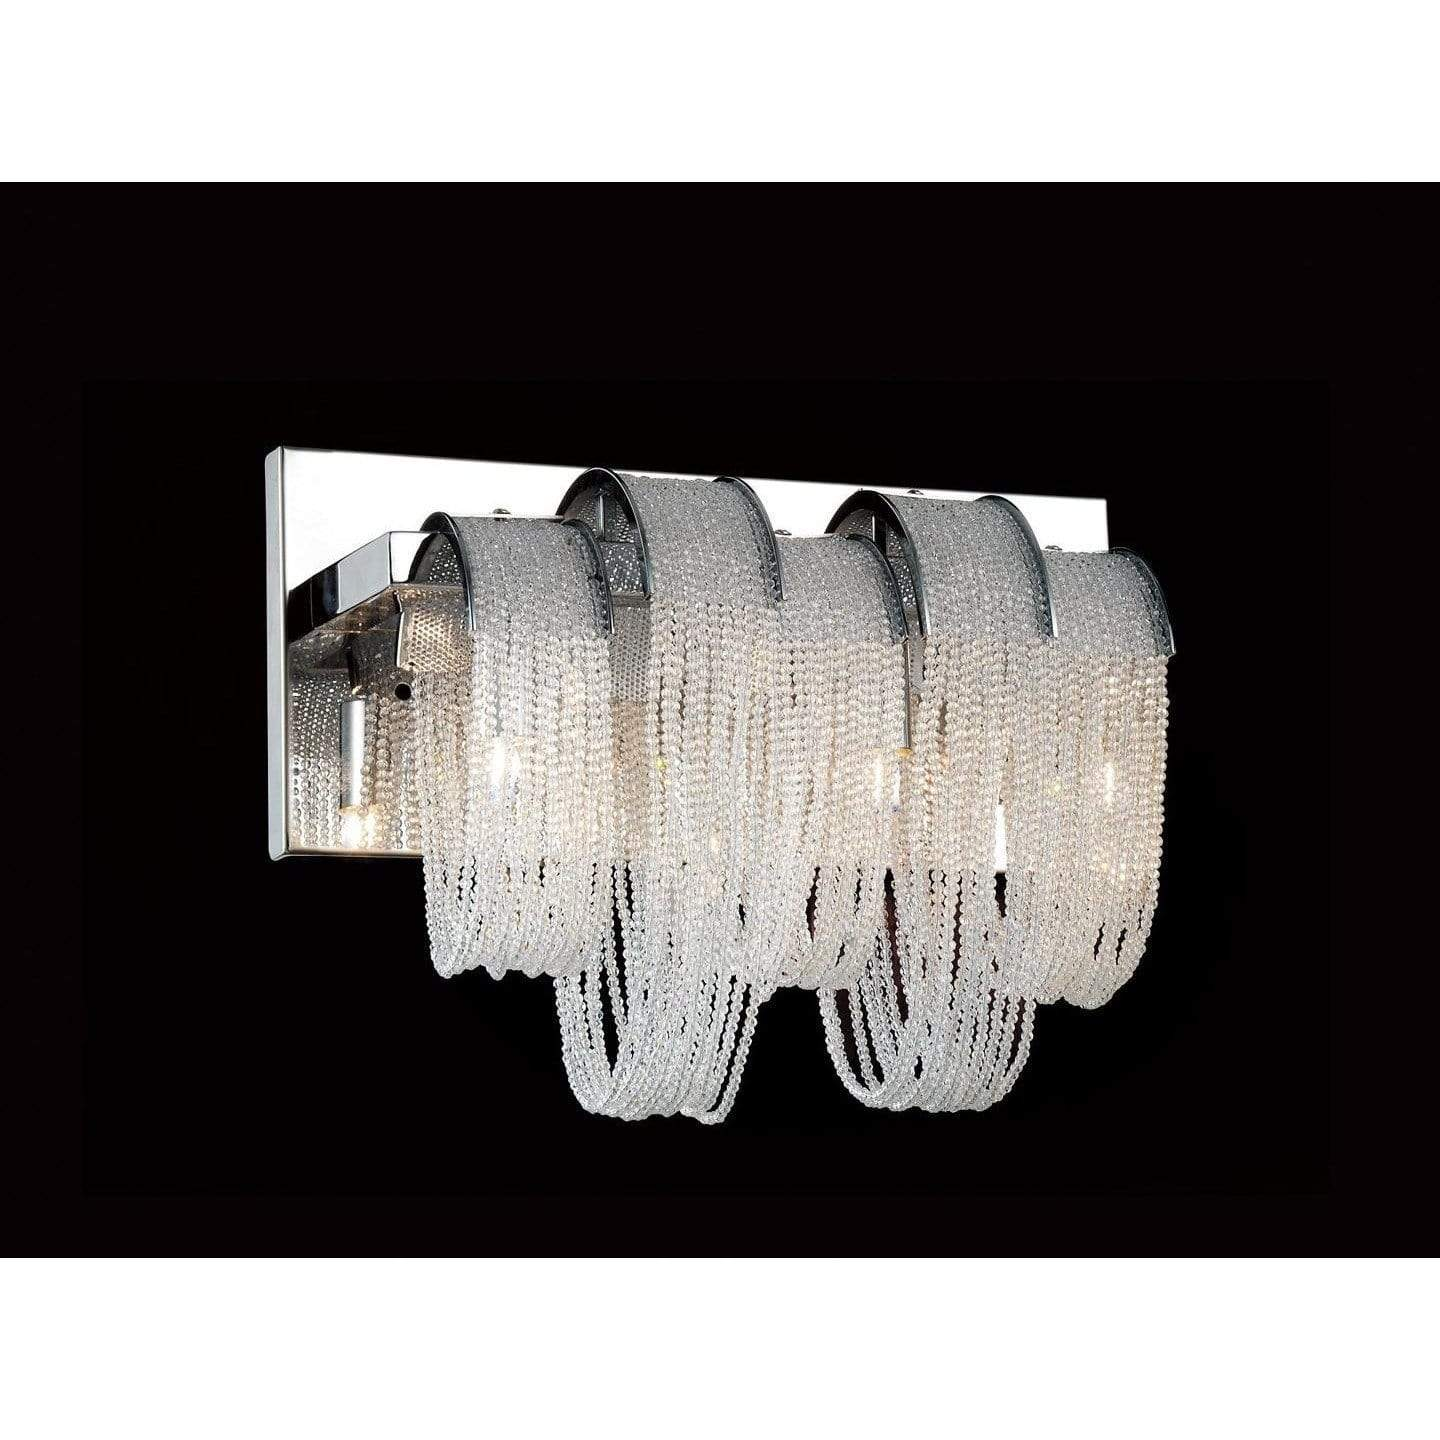 CWI Lighting Bathroom Lighting Chrome / K9 Clear Engaged 3 Light Vanity Light with Chrome finish by CWI Lighting 5615W13C